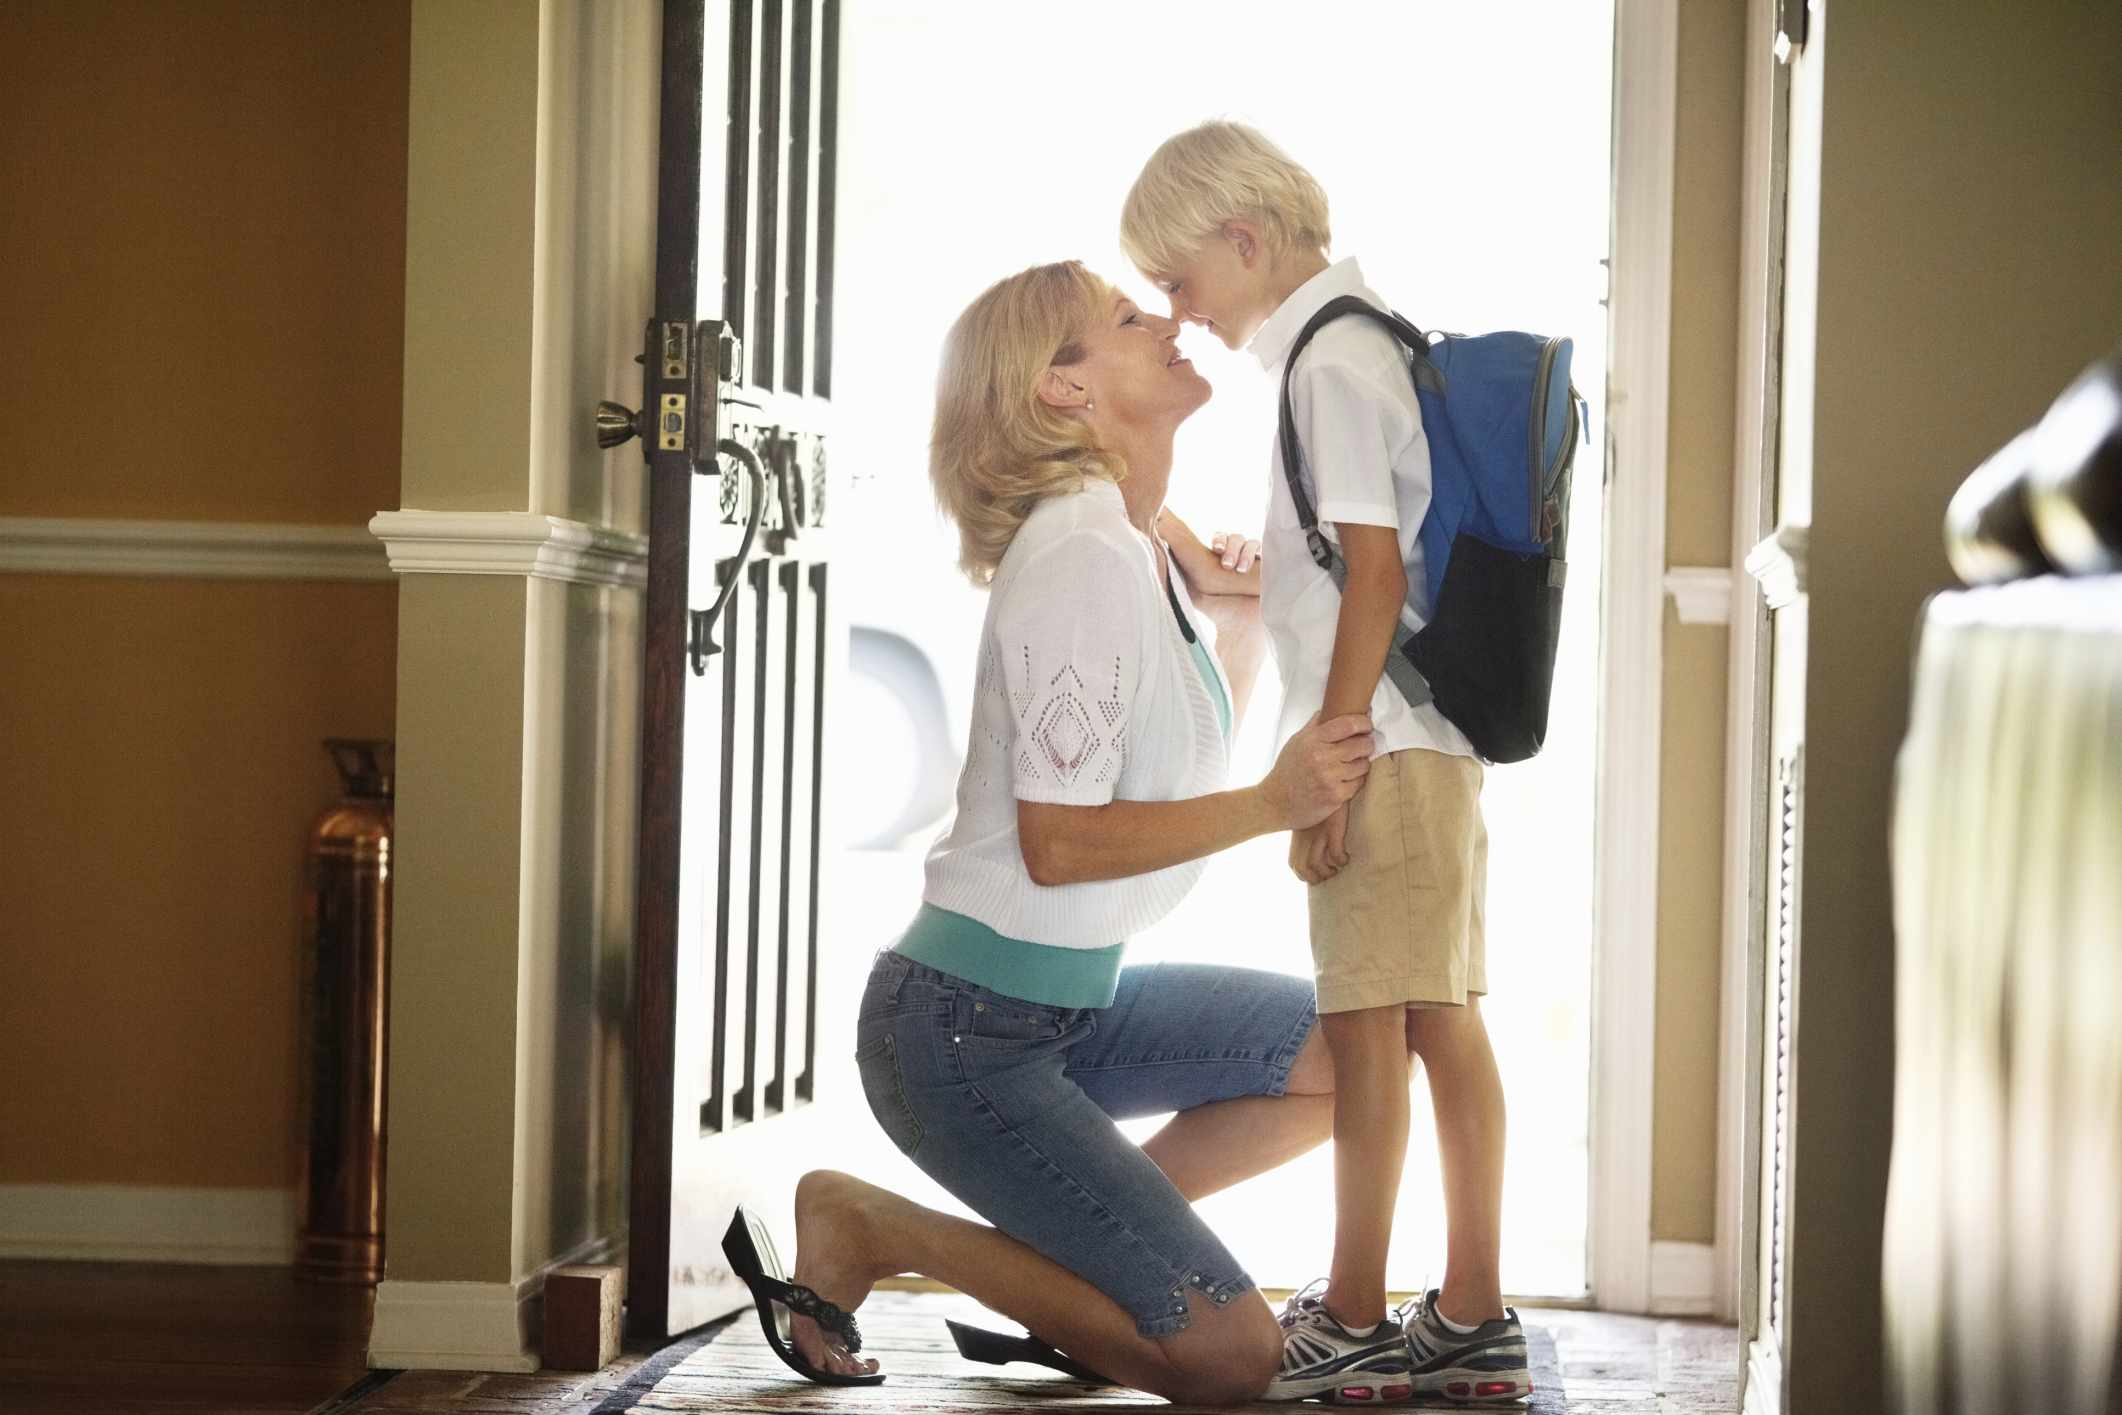 A young boy saying good bye to mom before school.